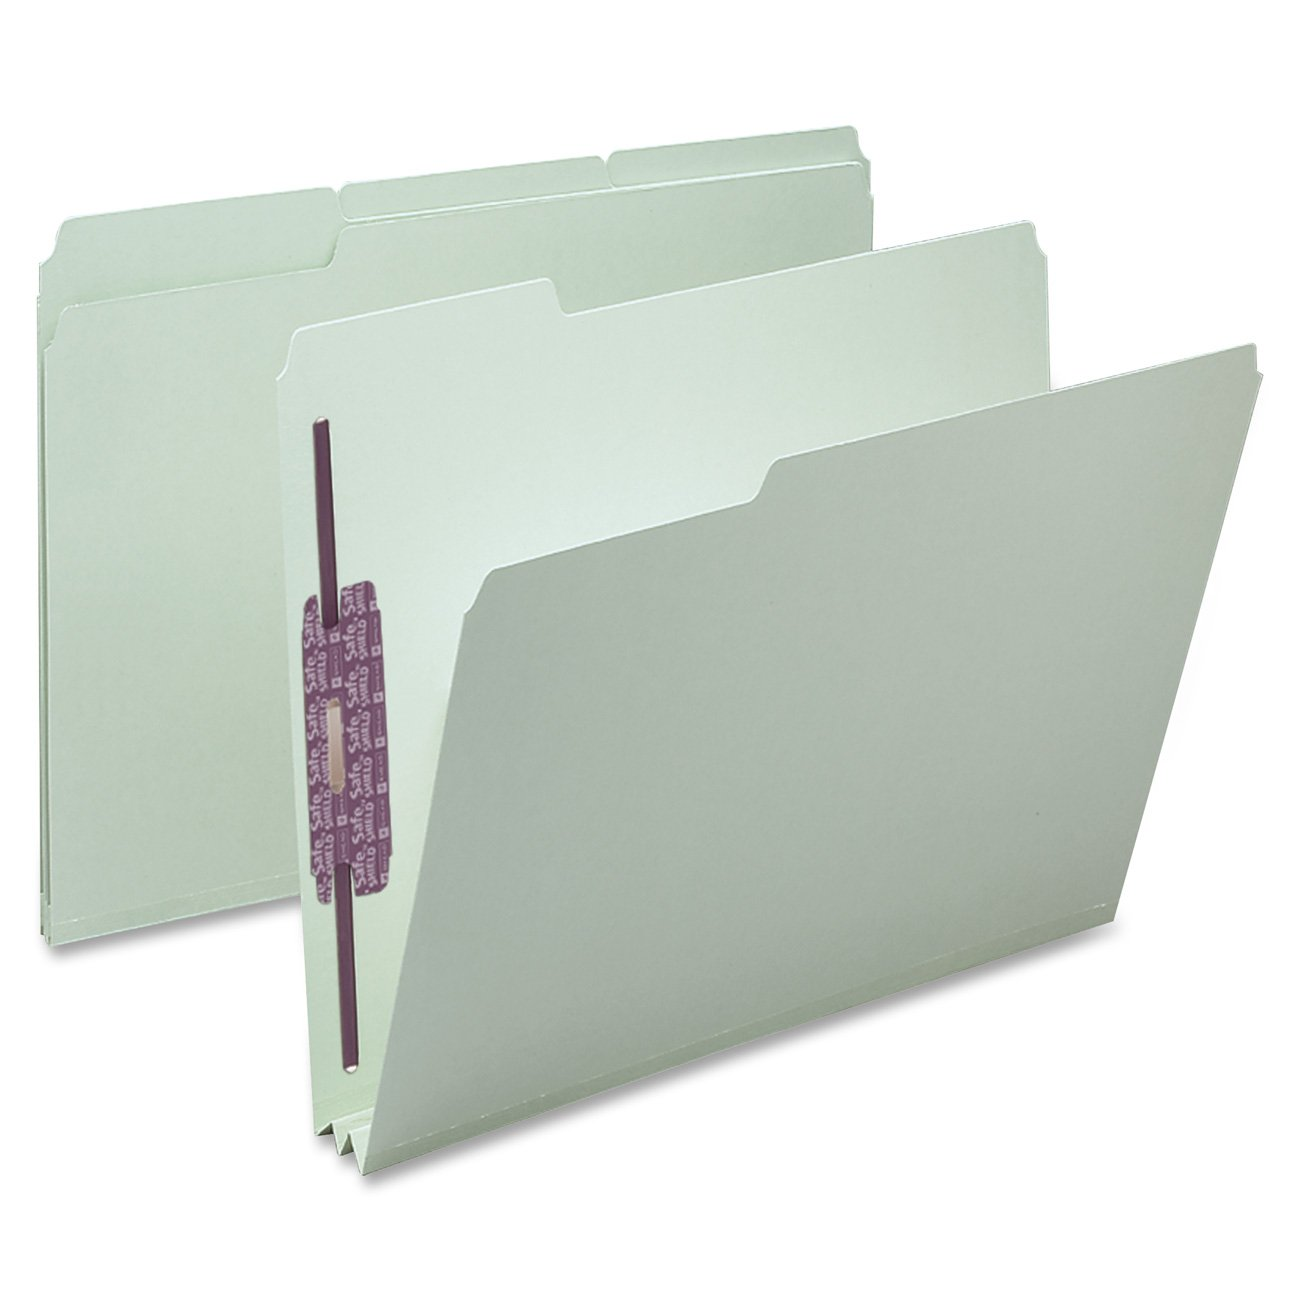 Smead Pressboard Fastener File Folder with SafeSHIELD Fasteners, 2 Fasteners, 1/3-Cut Tab, 2'' Expansion, Letter Size, Gray/Green, 25 per Box (14934)